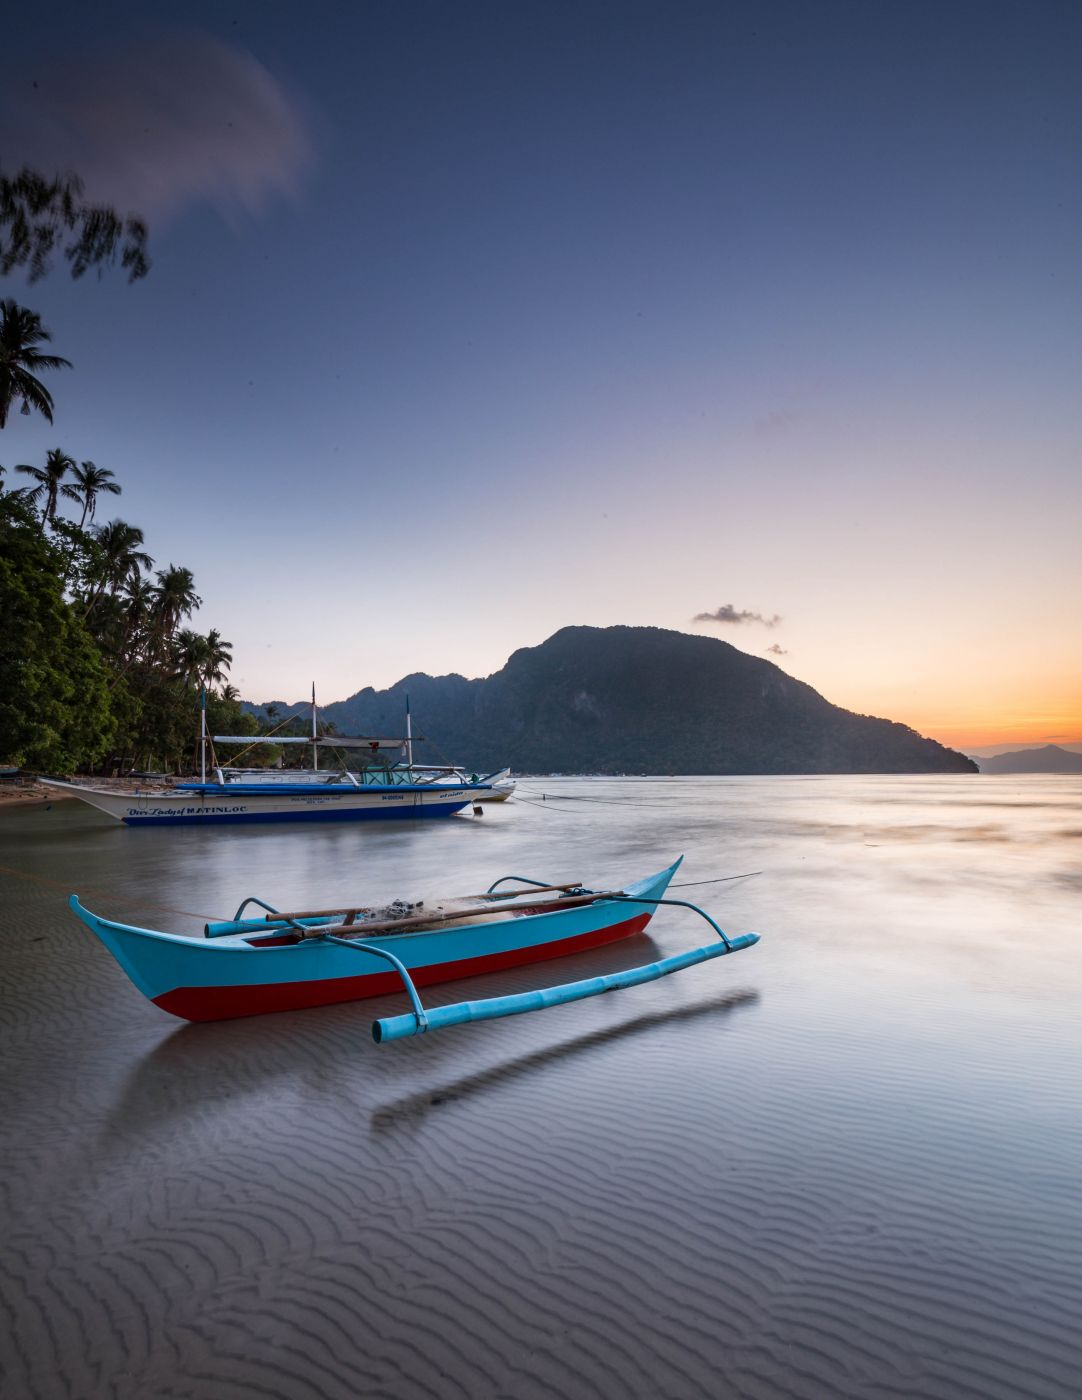 best sunset view at el nido, Philippines